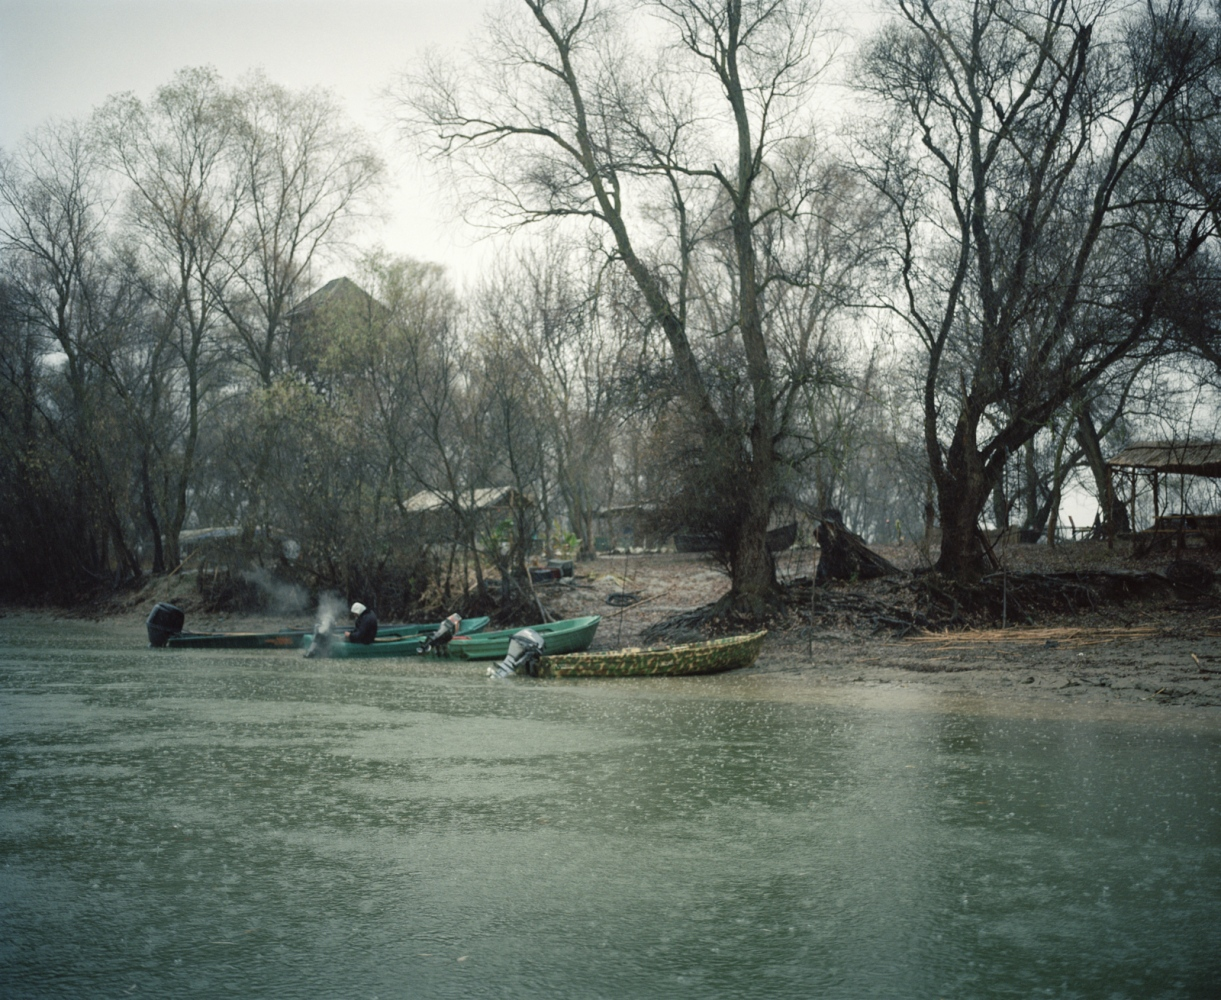 Romania, Tulcea. Fishermen prepare for a day of work. In Romania is now forbidden to fish sturgions because in risk of extinction but on the other side of the Danube Delta, in Ukraine, the fishing is still allowed.